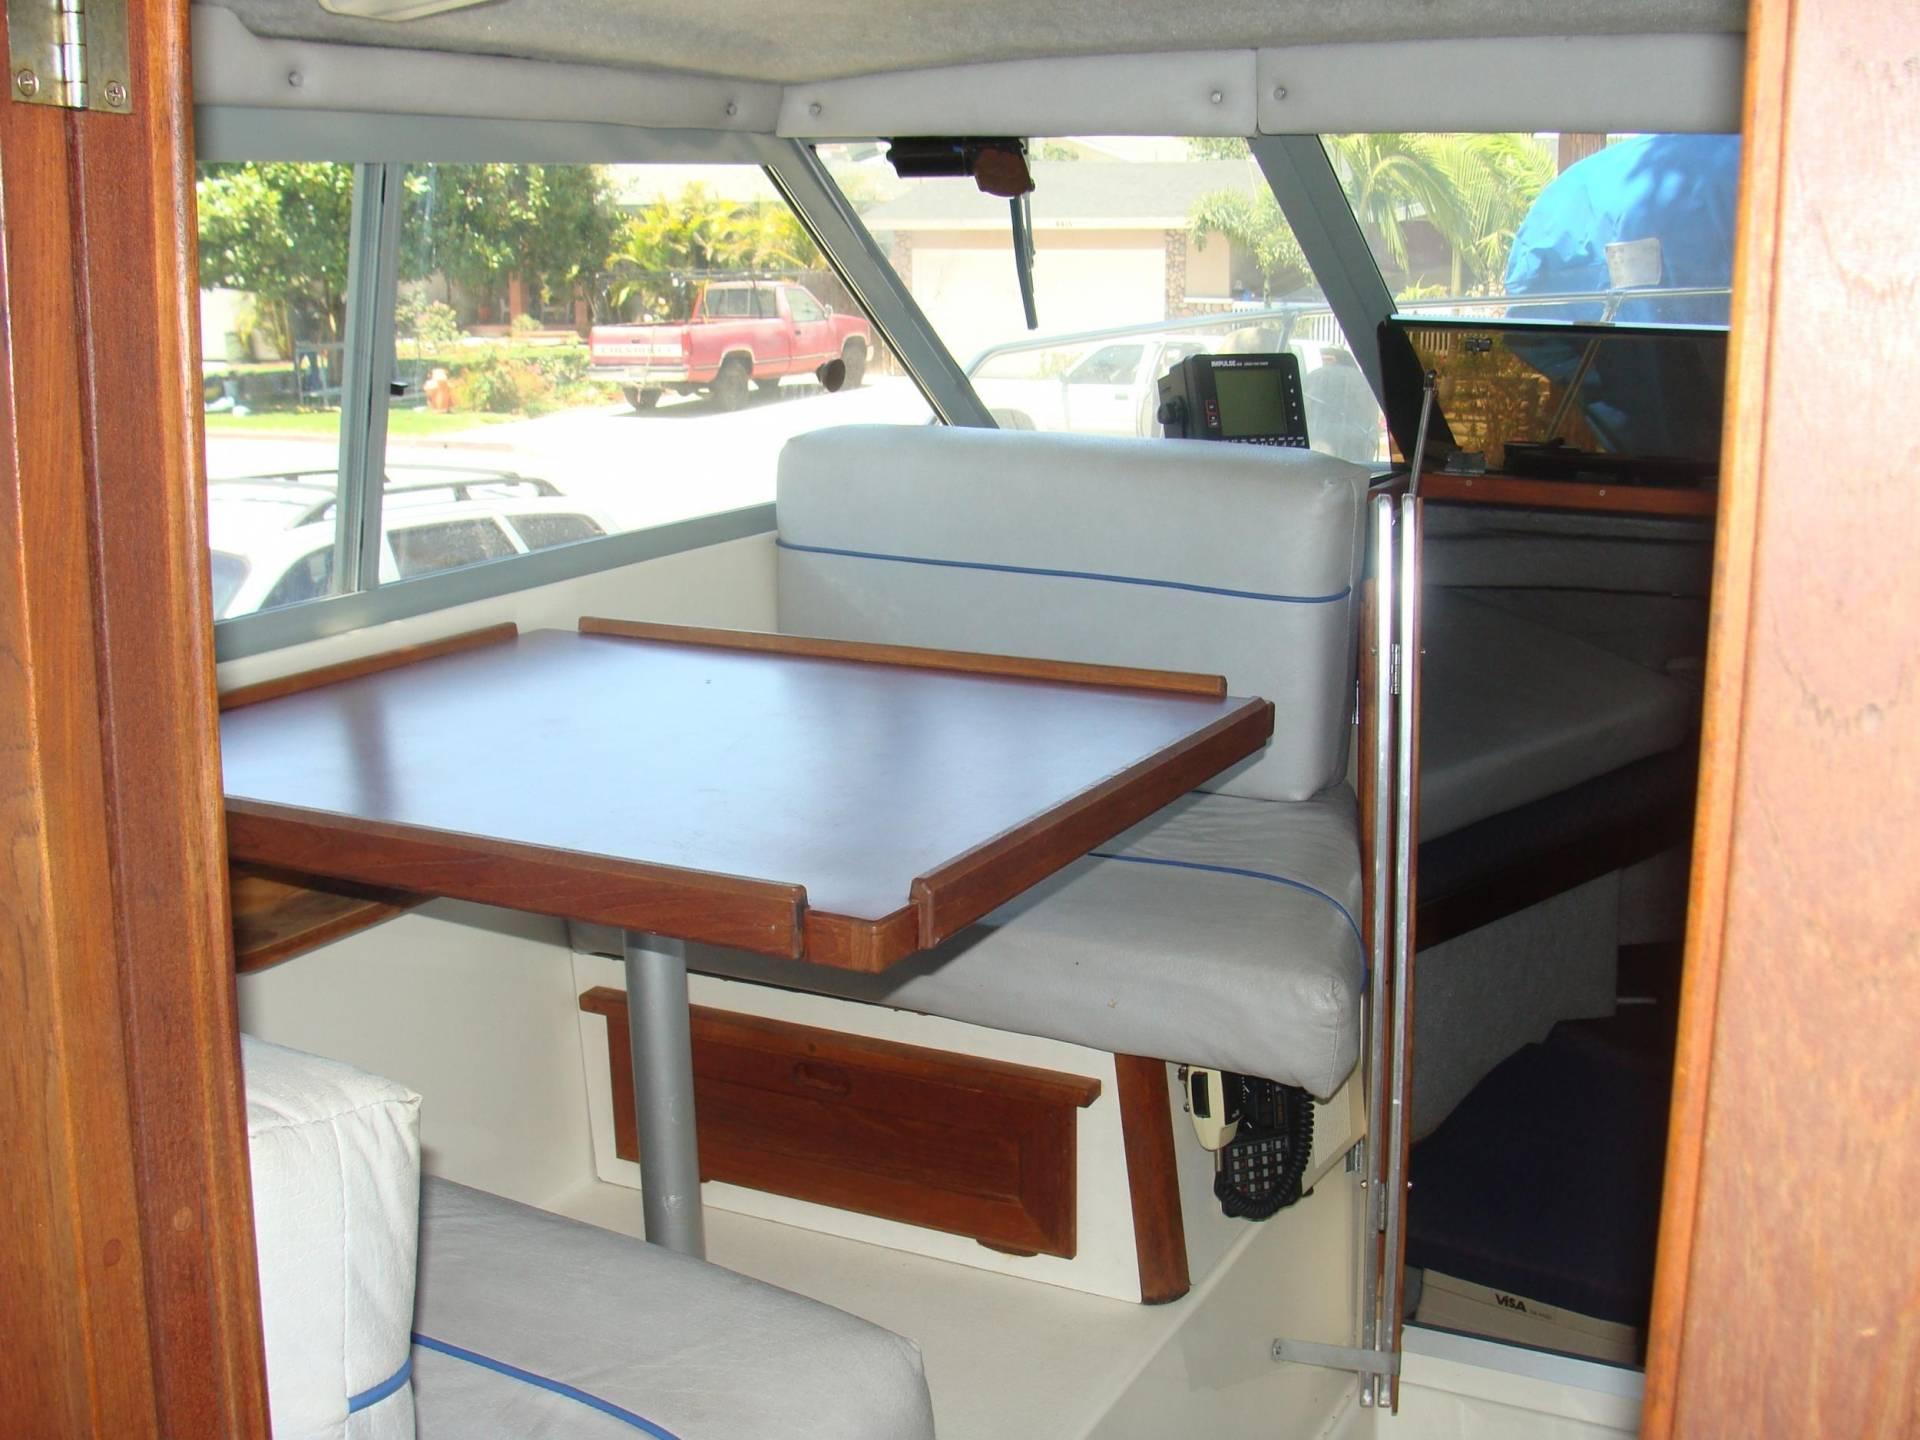 26' BAYLINER PILOT HOUSE | Bloodydecks